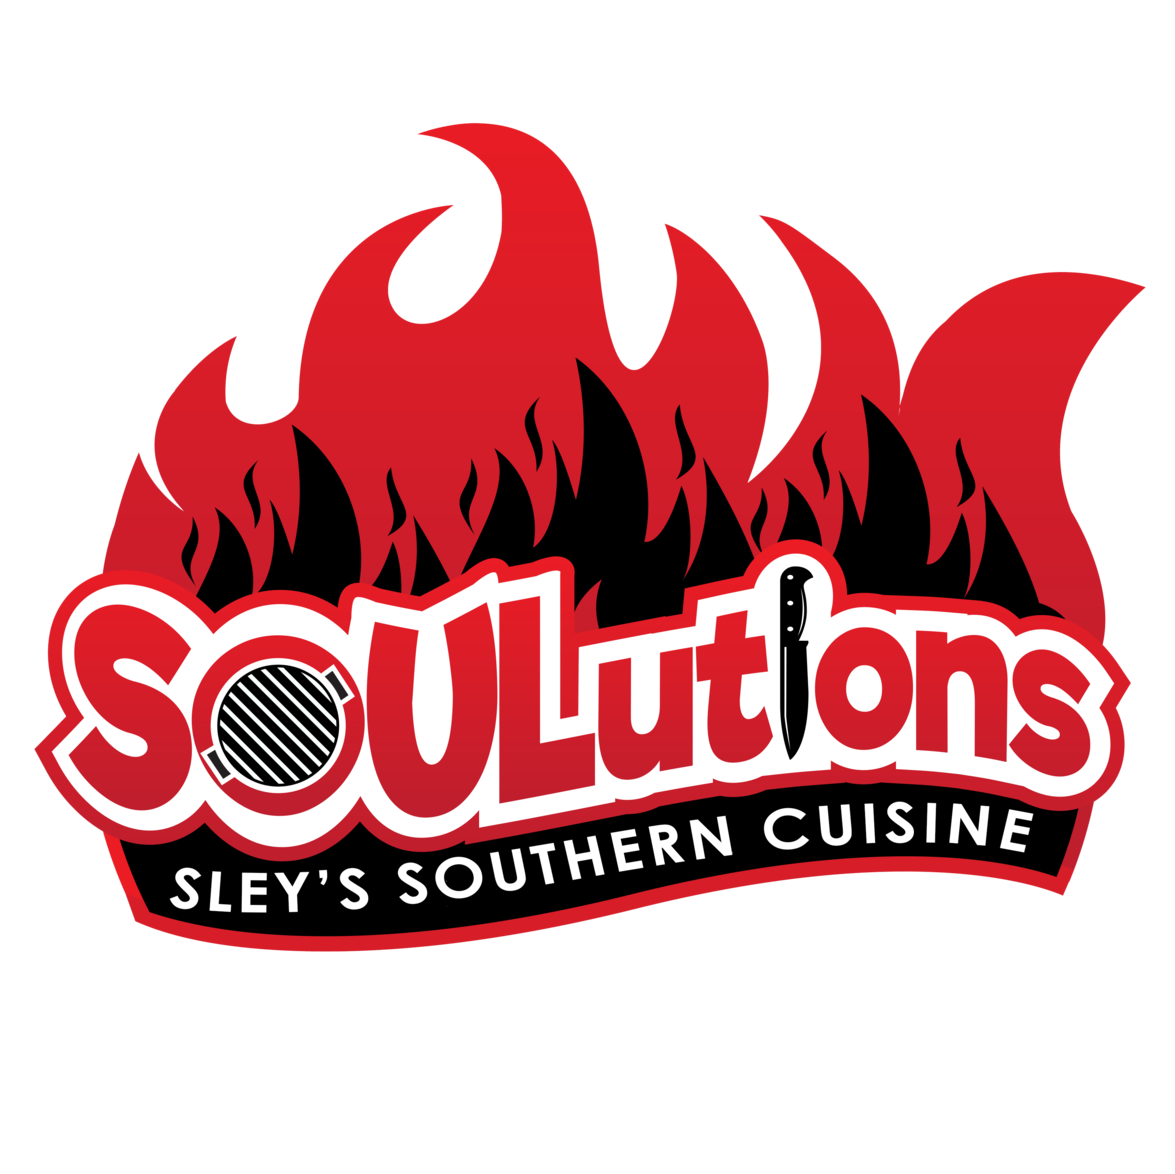 Souloutions.png